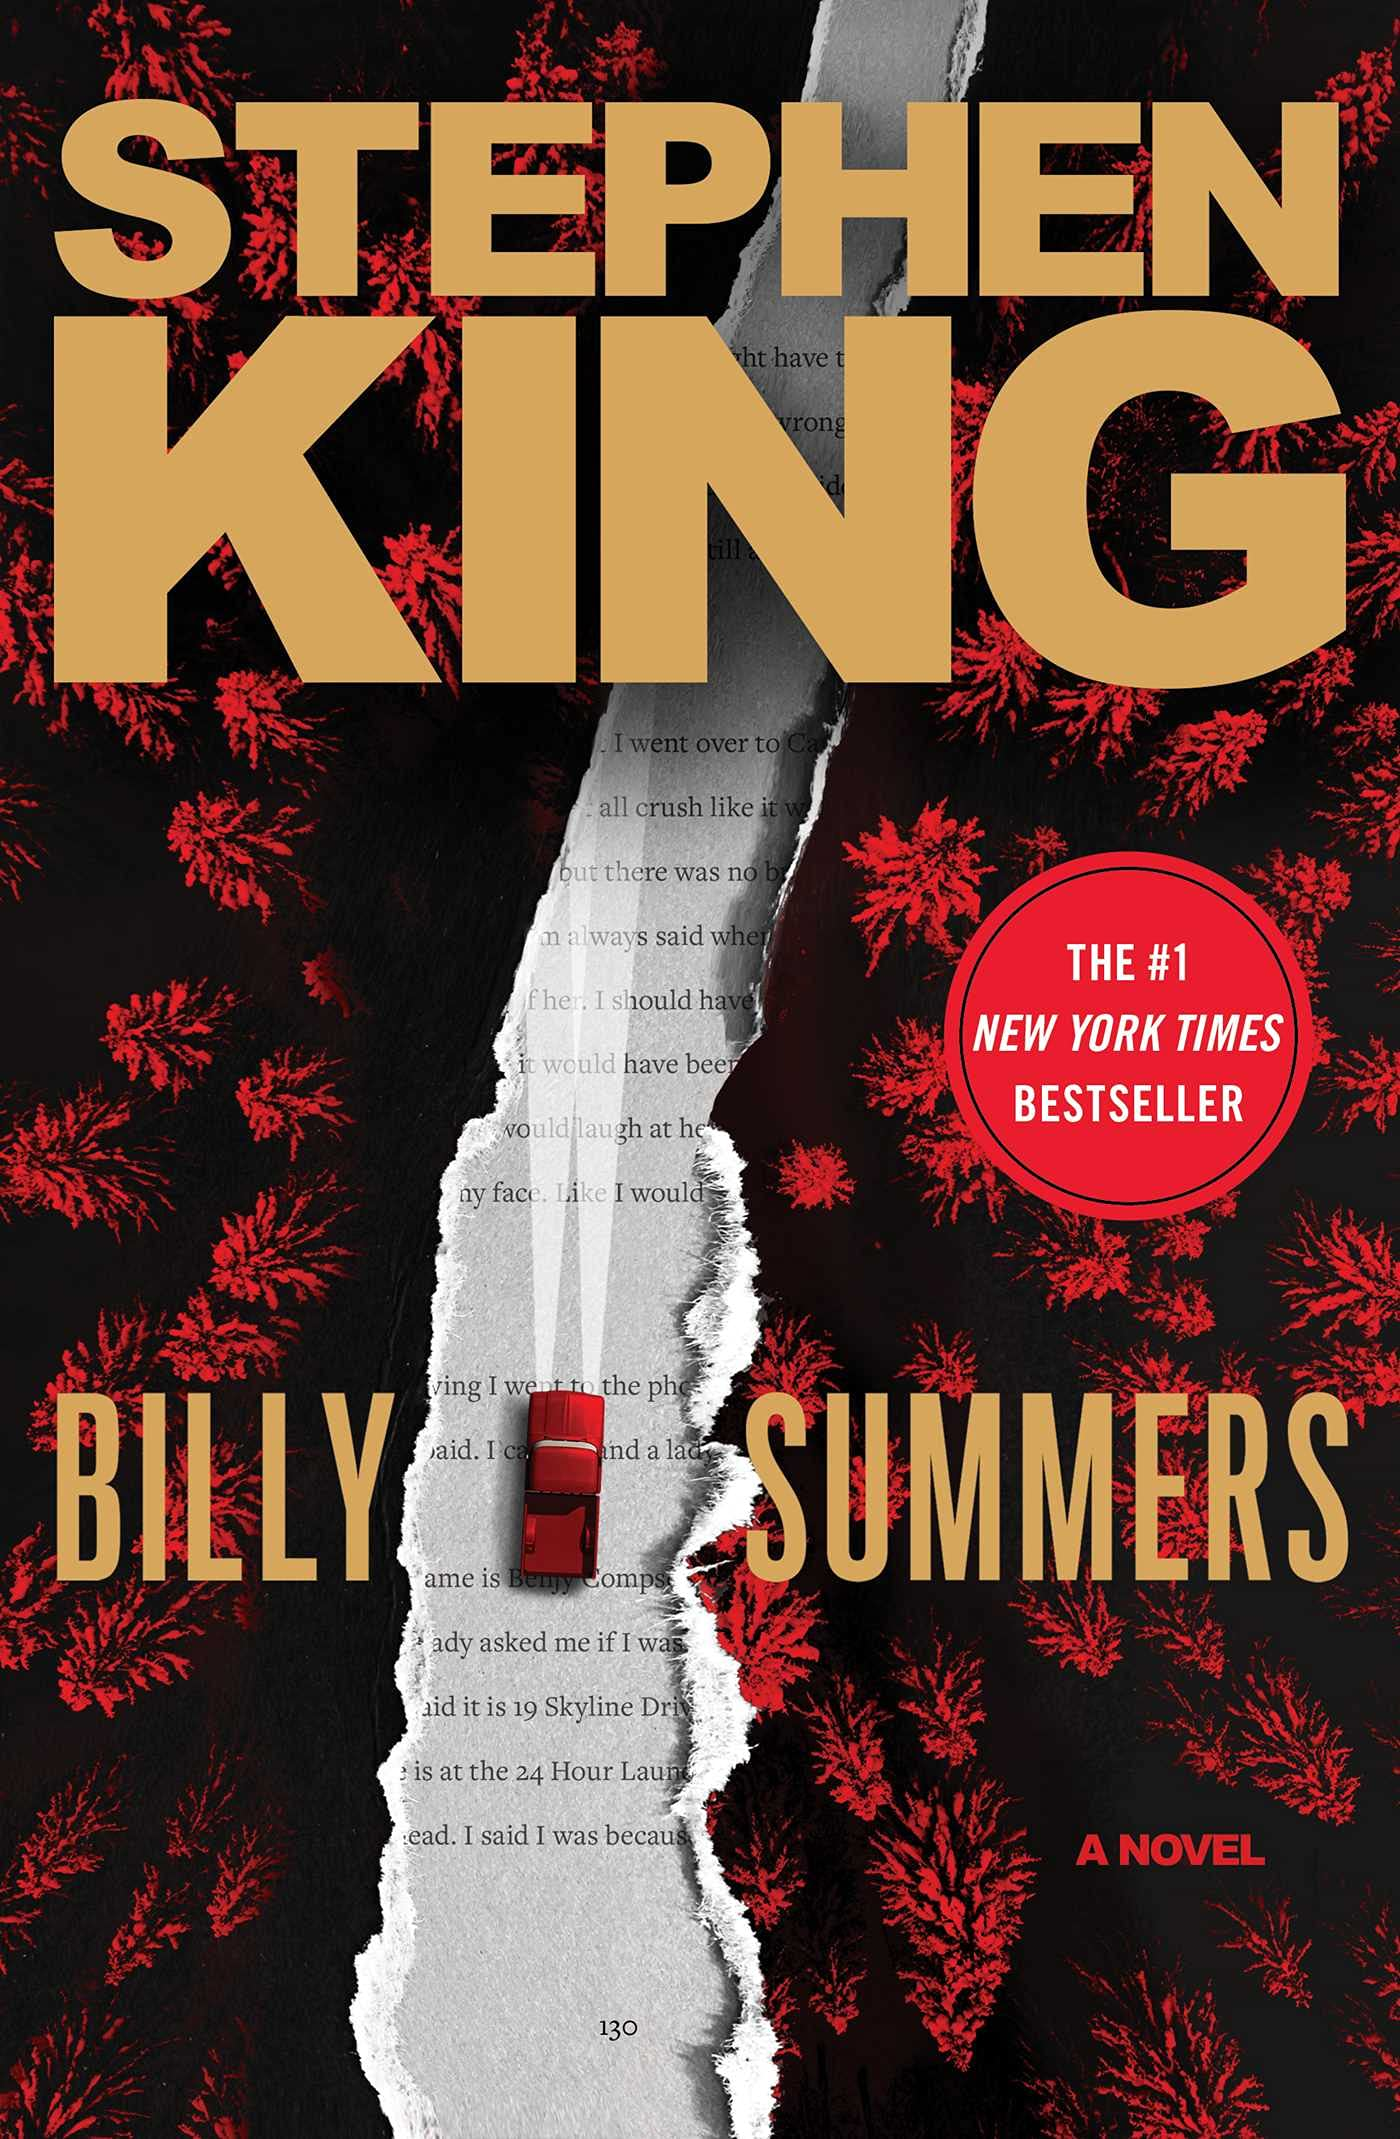 Cover image of Billy Summers by Stephen King